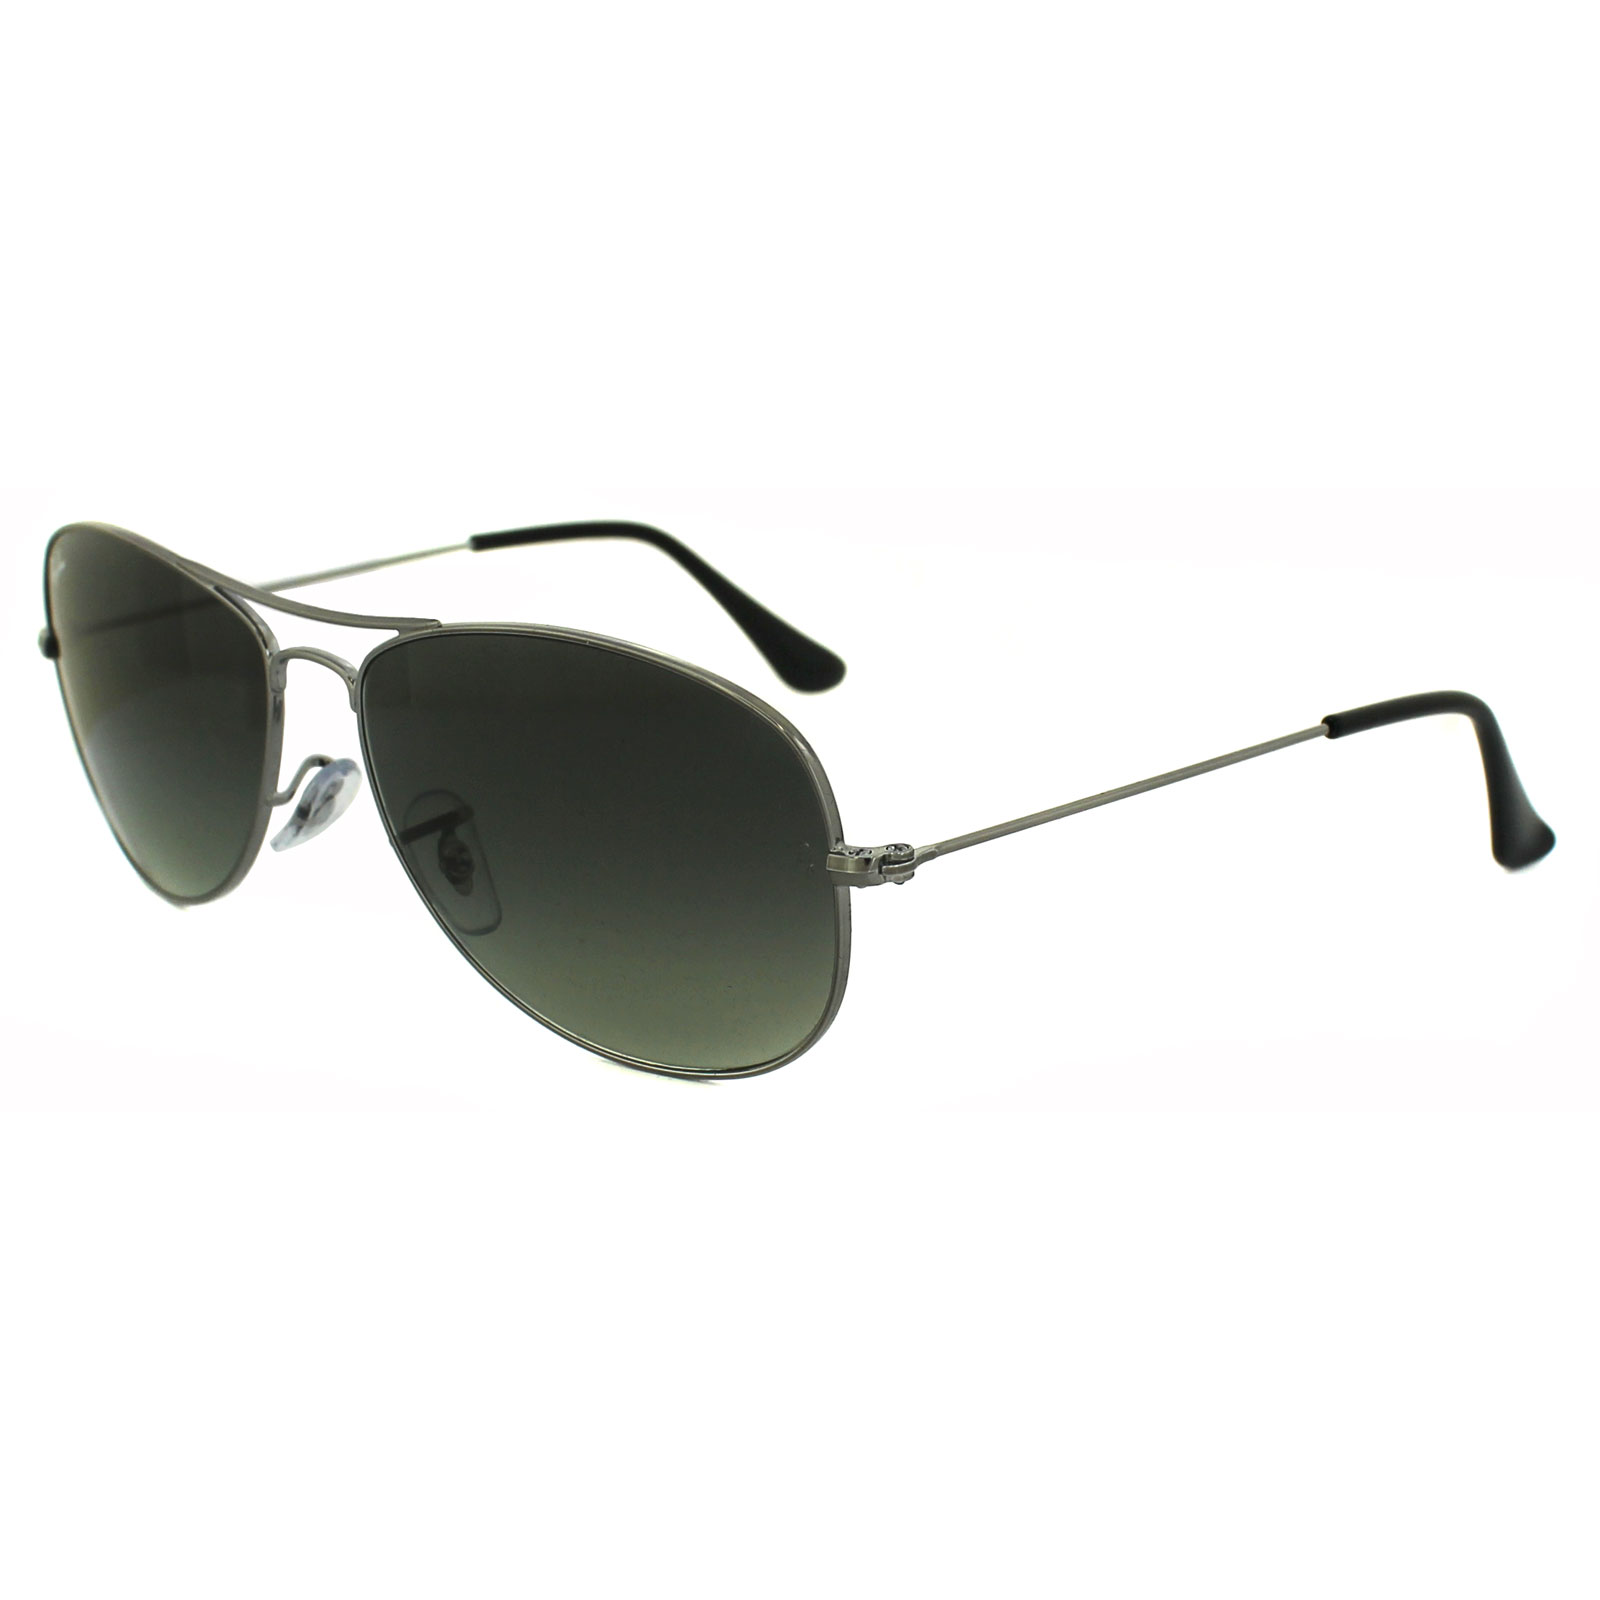 cheap ray ban cockpit 3362 sunglasses discounted sunglasses. Black Bedroom Furniture Sets. Home Design Ideas